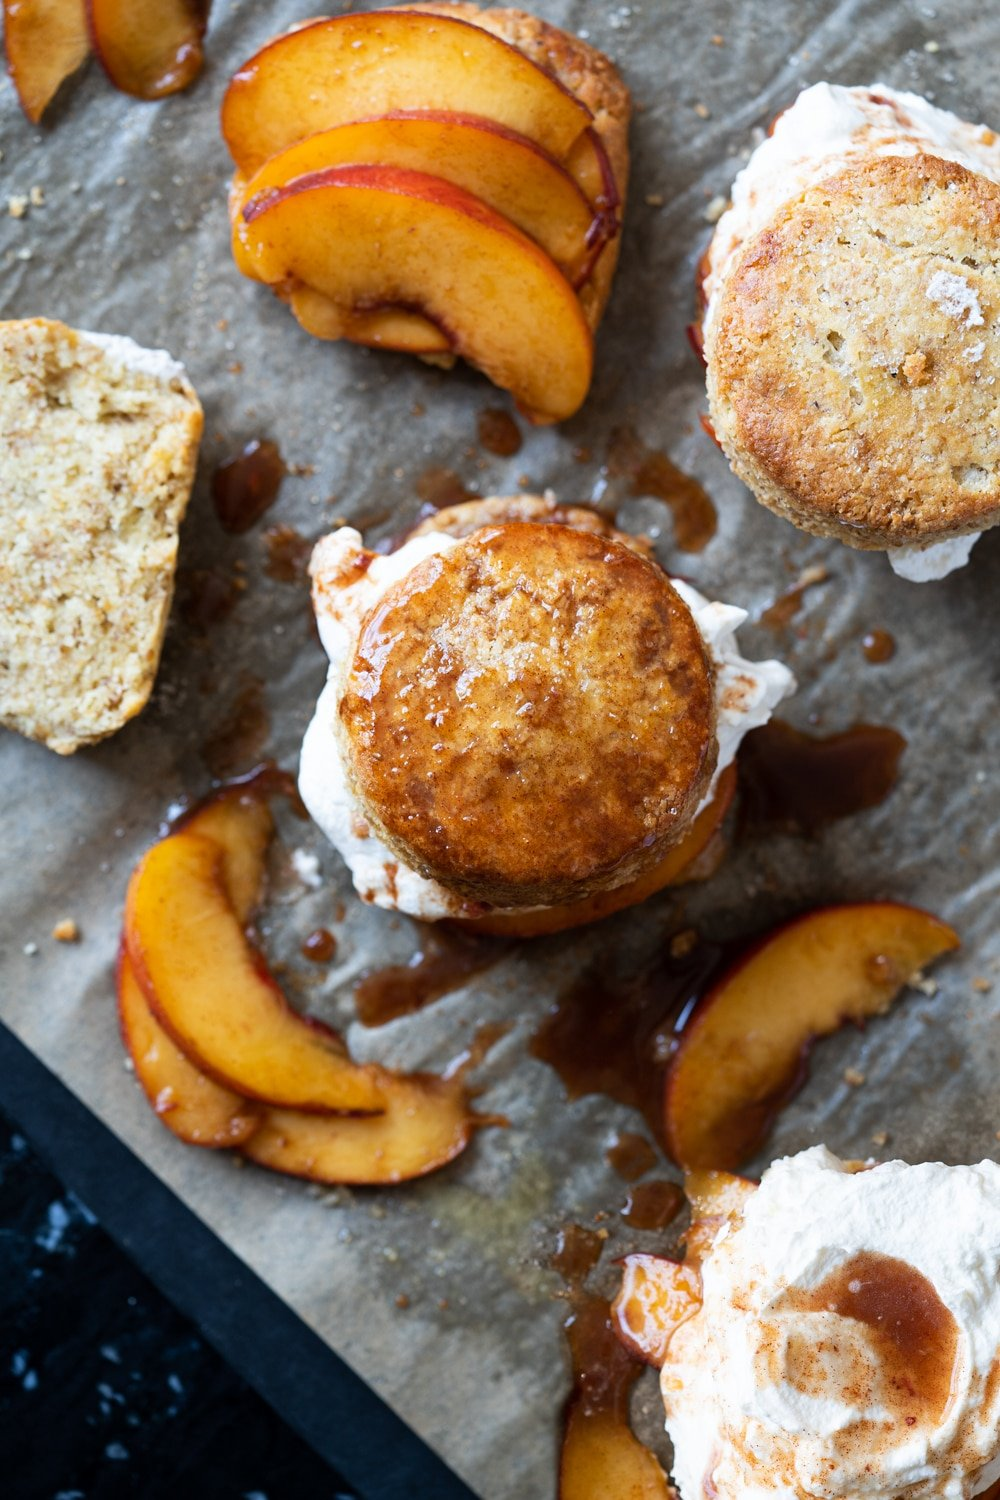 Overhead shot of keto peach shortcakes with peach slices and whipped cream